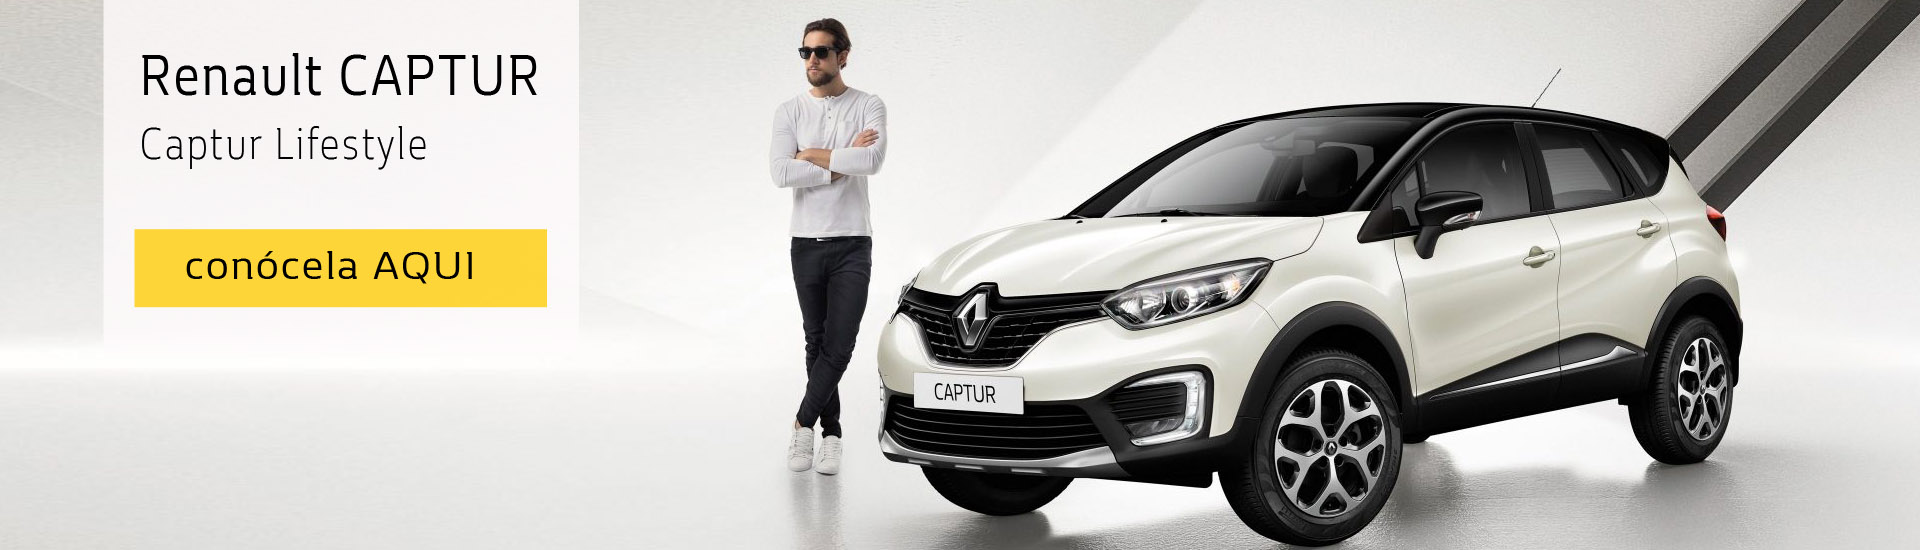 Renault Captur nov 2016